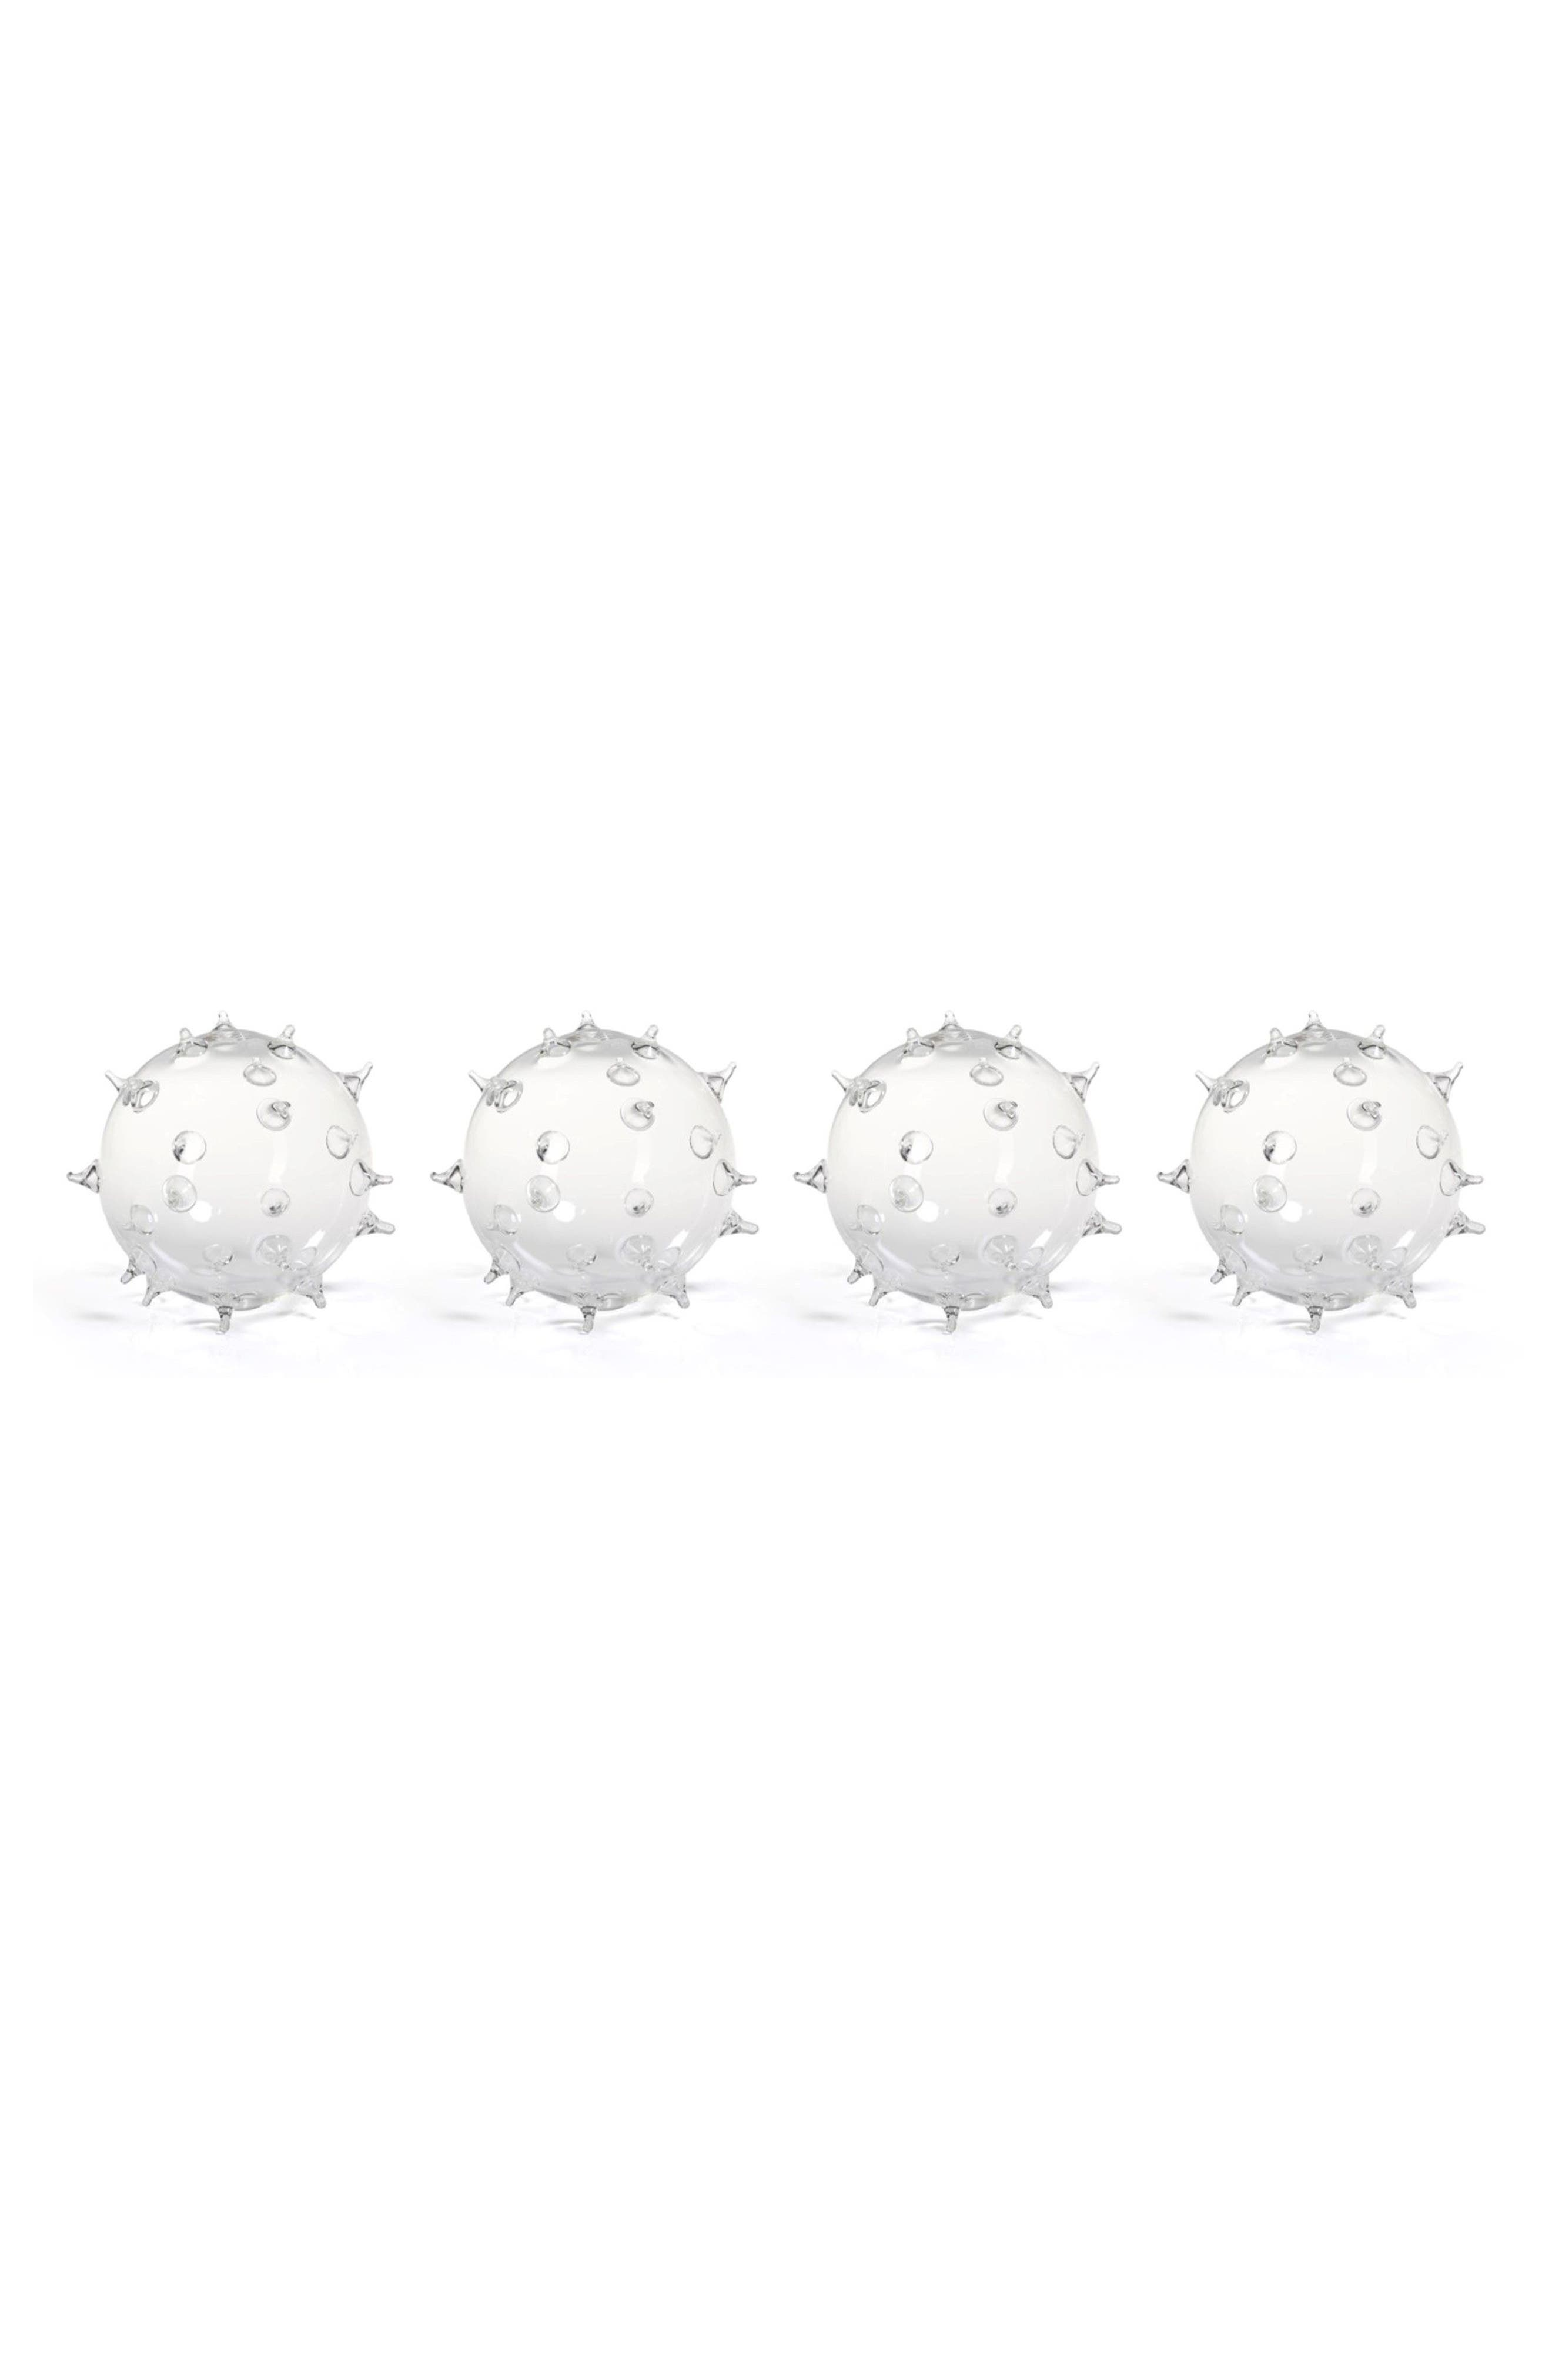 Suri Set of 4 Spiked Glass Vases,                         Main,                         color, 100